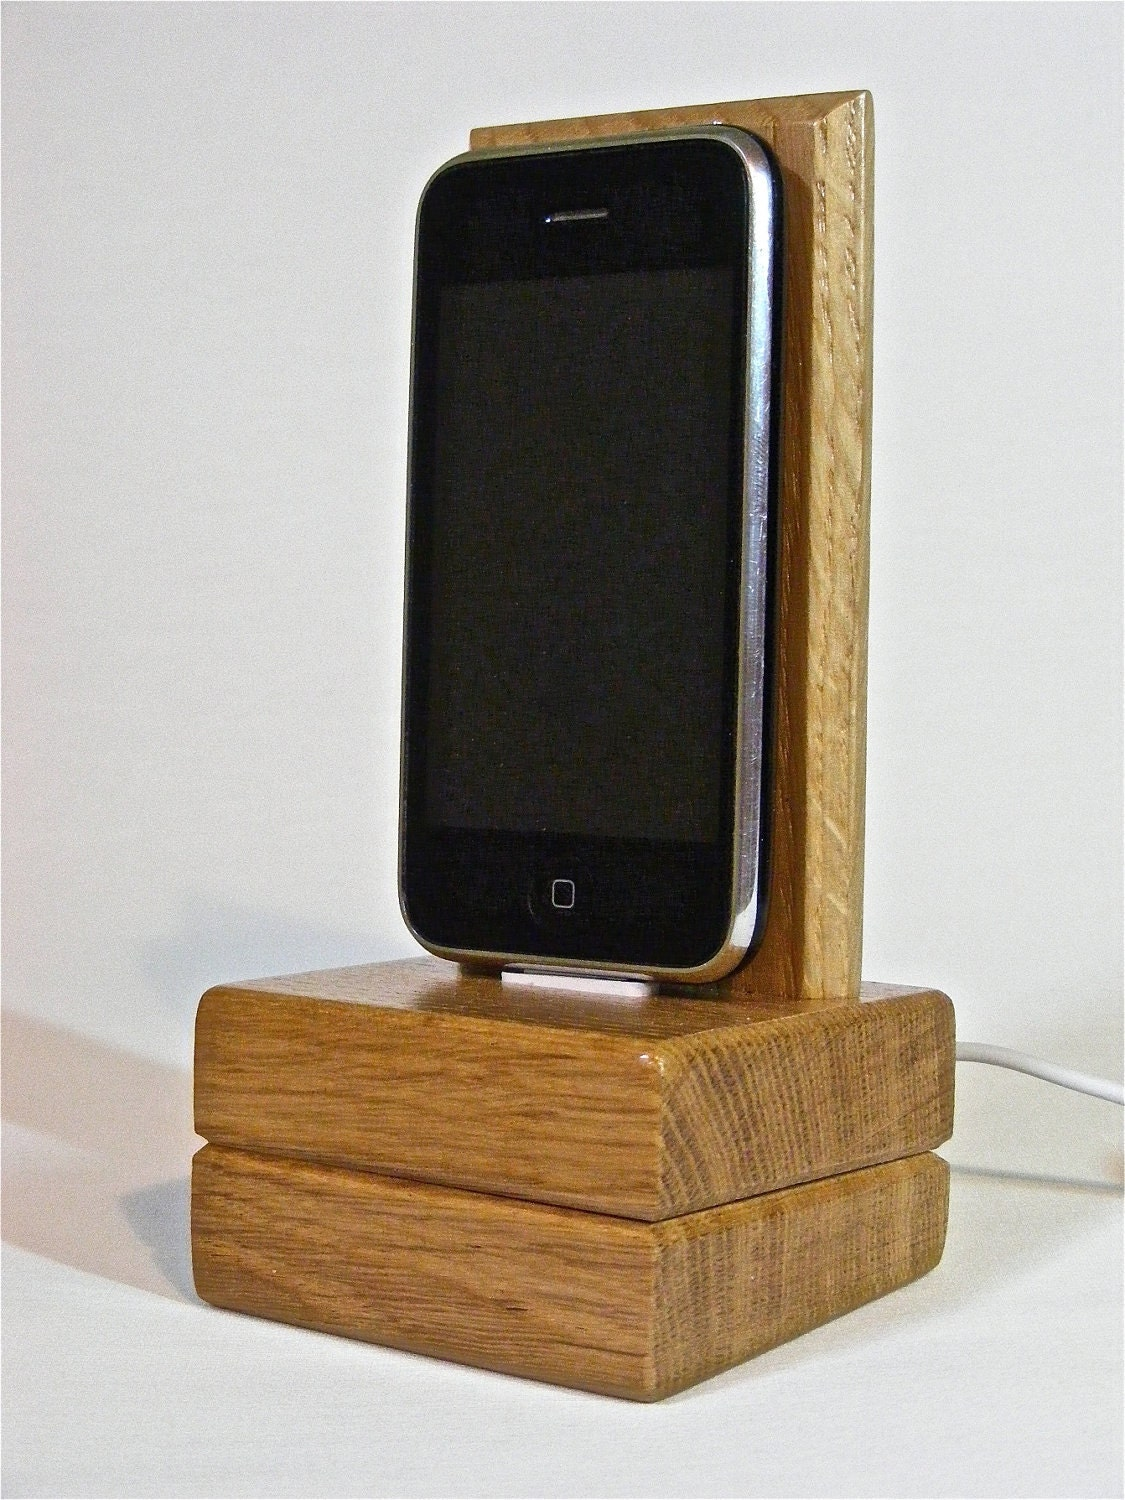 dock en bois pour iphone fait maison iphone 4 4s forum. Black Bedroom Furniture Sets. Home Design Ideas